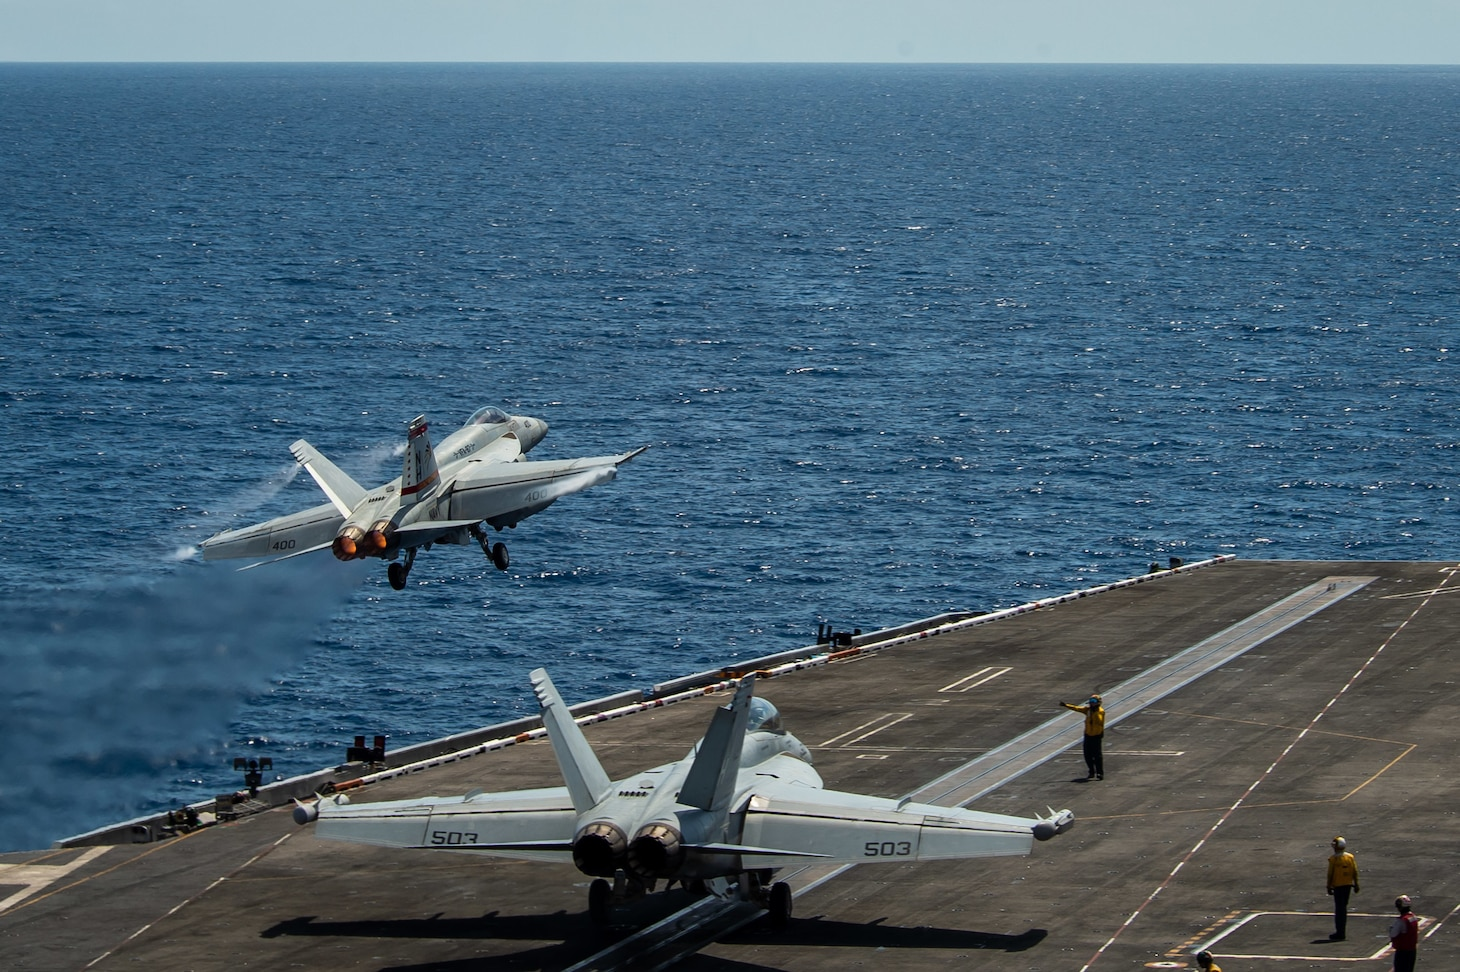 "SOUTH CHINA SEA (April 6, 2021) – An F/A-18E Super Hornet, assigned to the ""Golden Warriors"" of Strike Fighter Squadron (VFA) 87, launches from the flight deck of the aircraft carrier USS Theodore Roosevelt (CVN 71) April 6, 2021. The Theodore Roosevelt Carrier Strike Group is on a scheduled deployment to the U.S. 7th Fleet area of operations. As the U.S. Navy's largest forward-deployed fleet, 7th Fleet routinely operates and interacts with 35 maritime nations while conducting missions to preserve and protect a free and open Indo-Pacific Region."